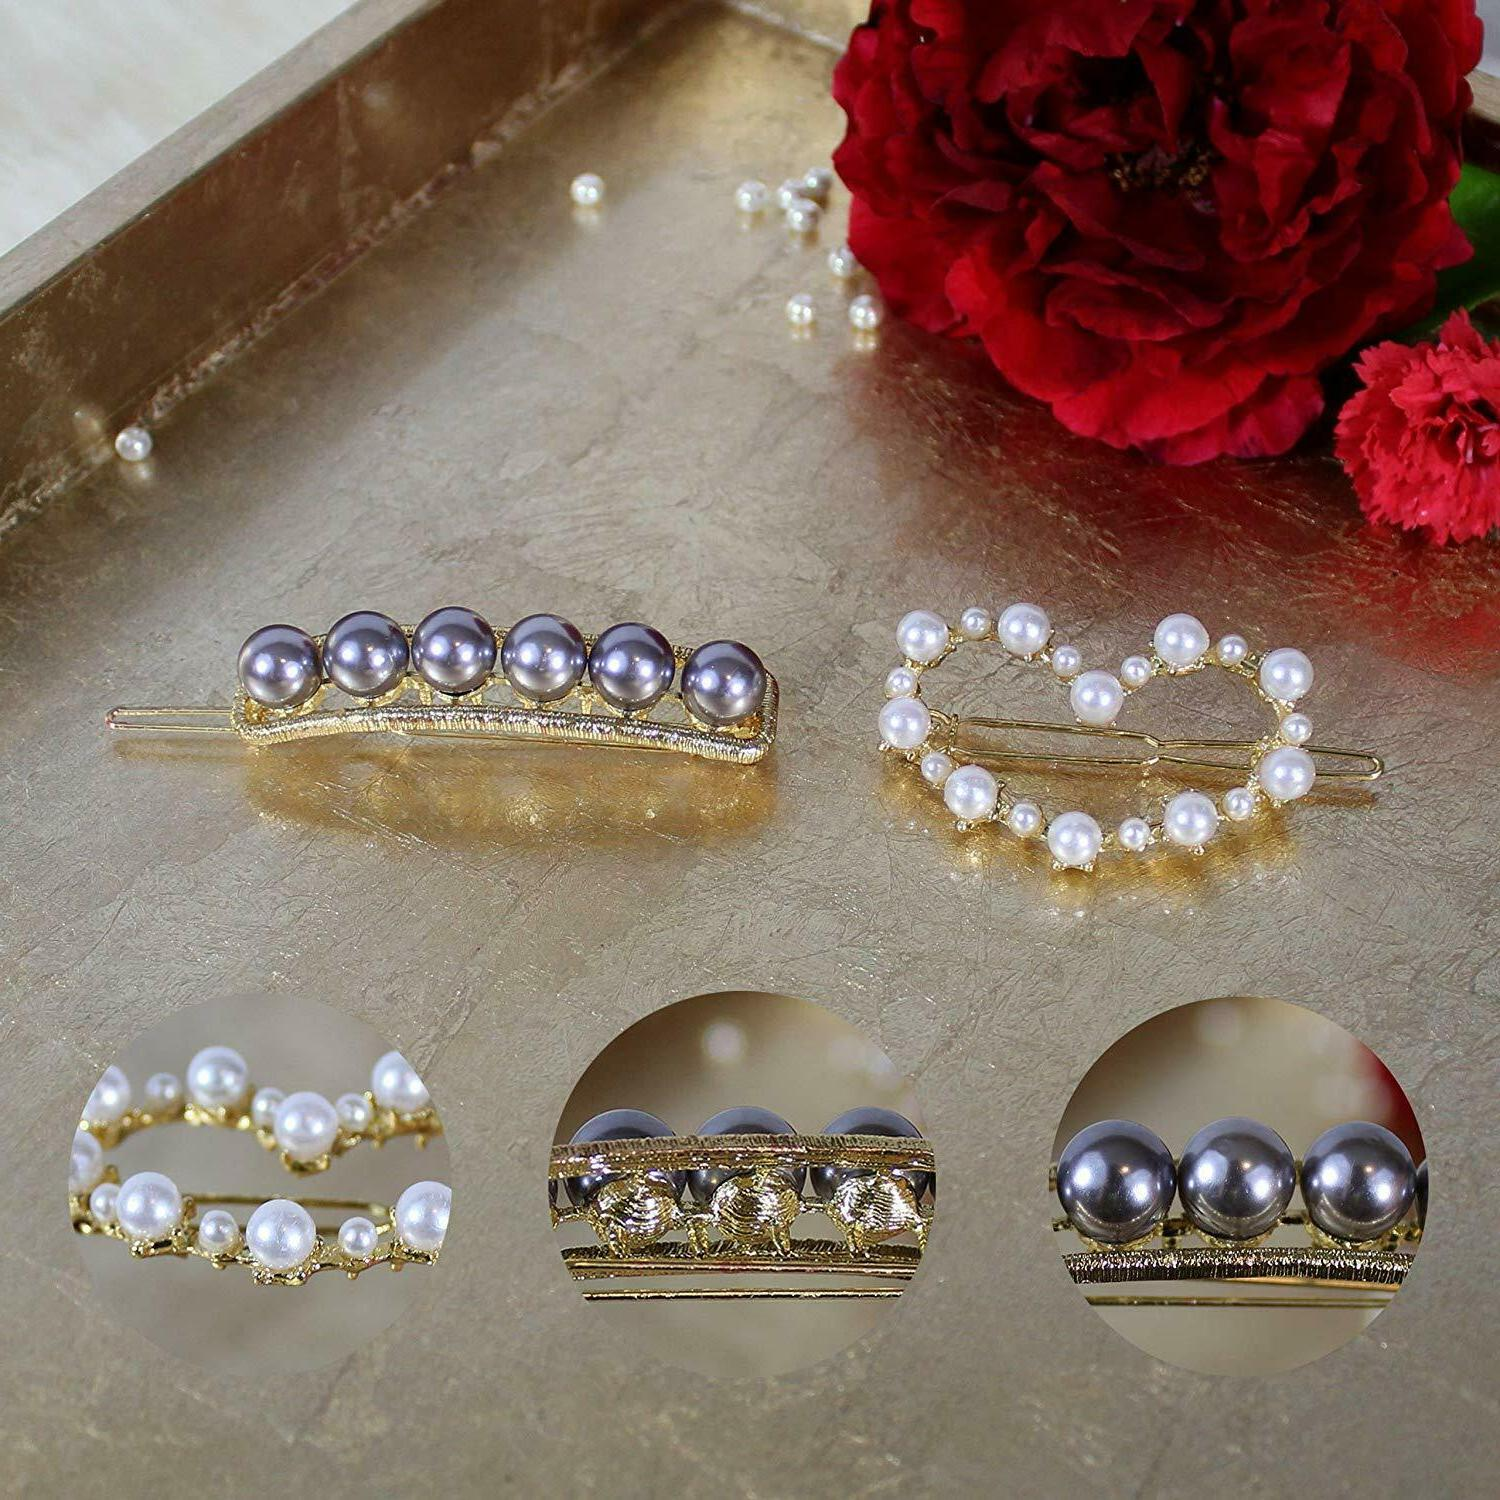 12 Clips Pearl Hair Barrettes for Woman Geometric Acrylic Resin